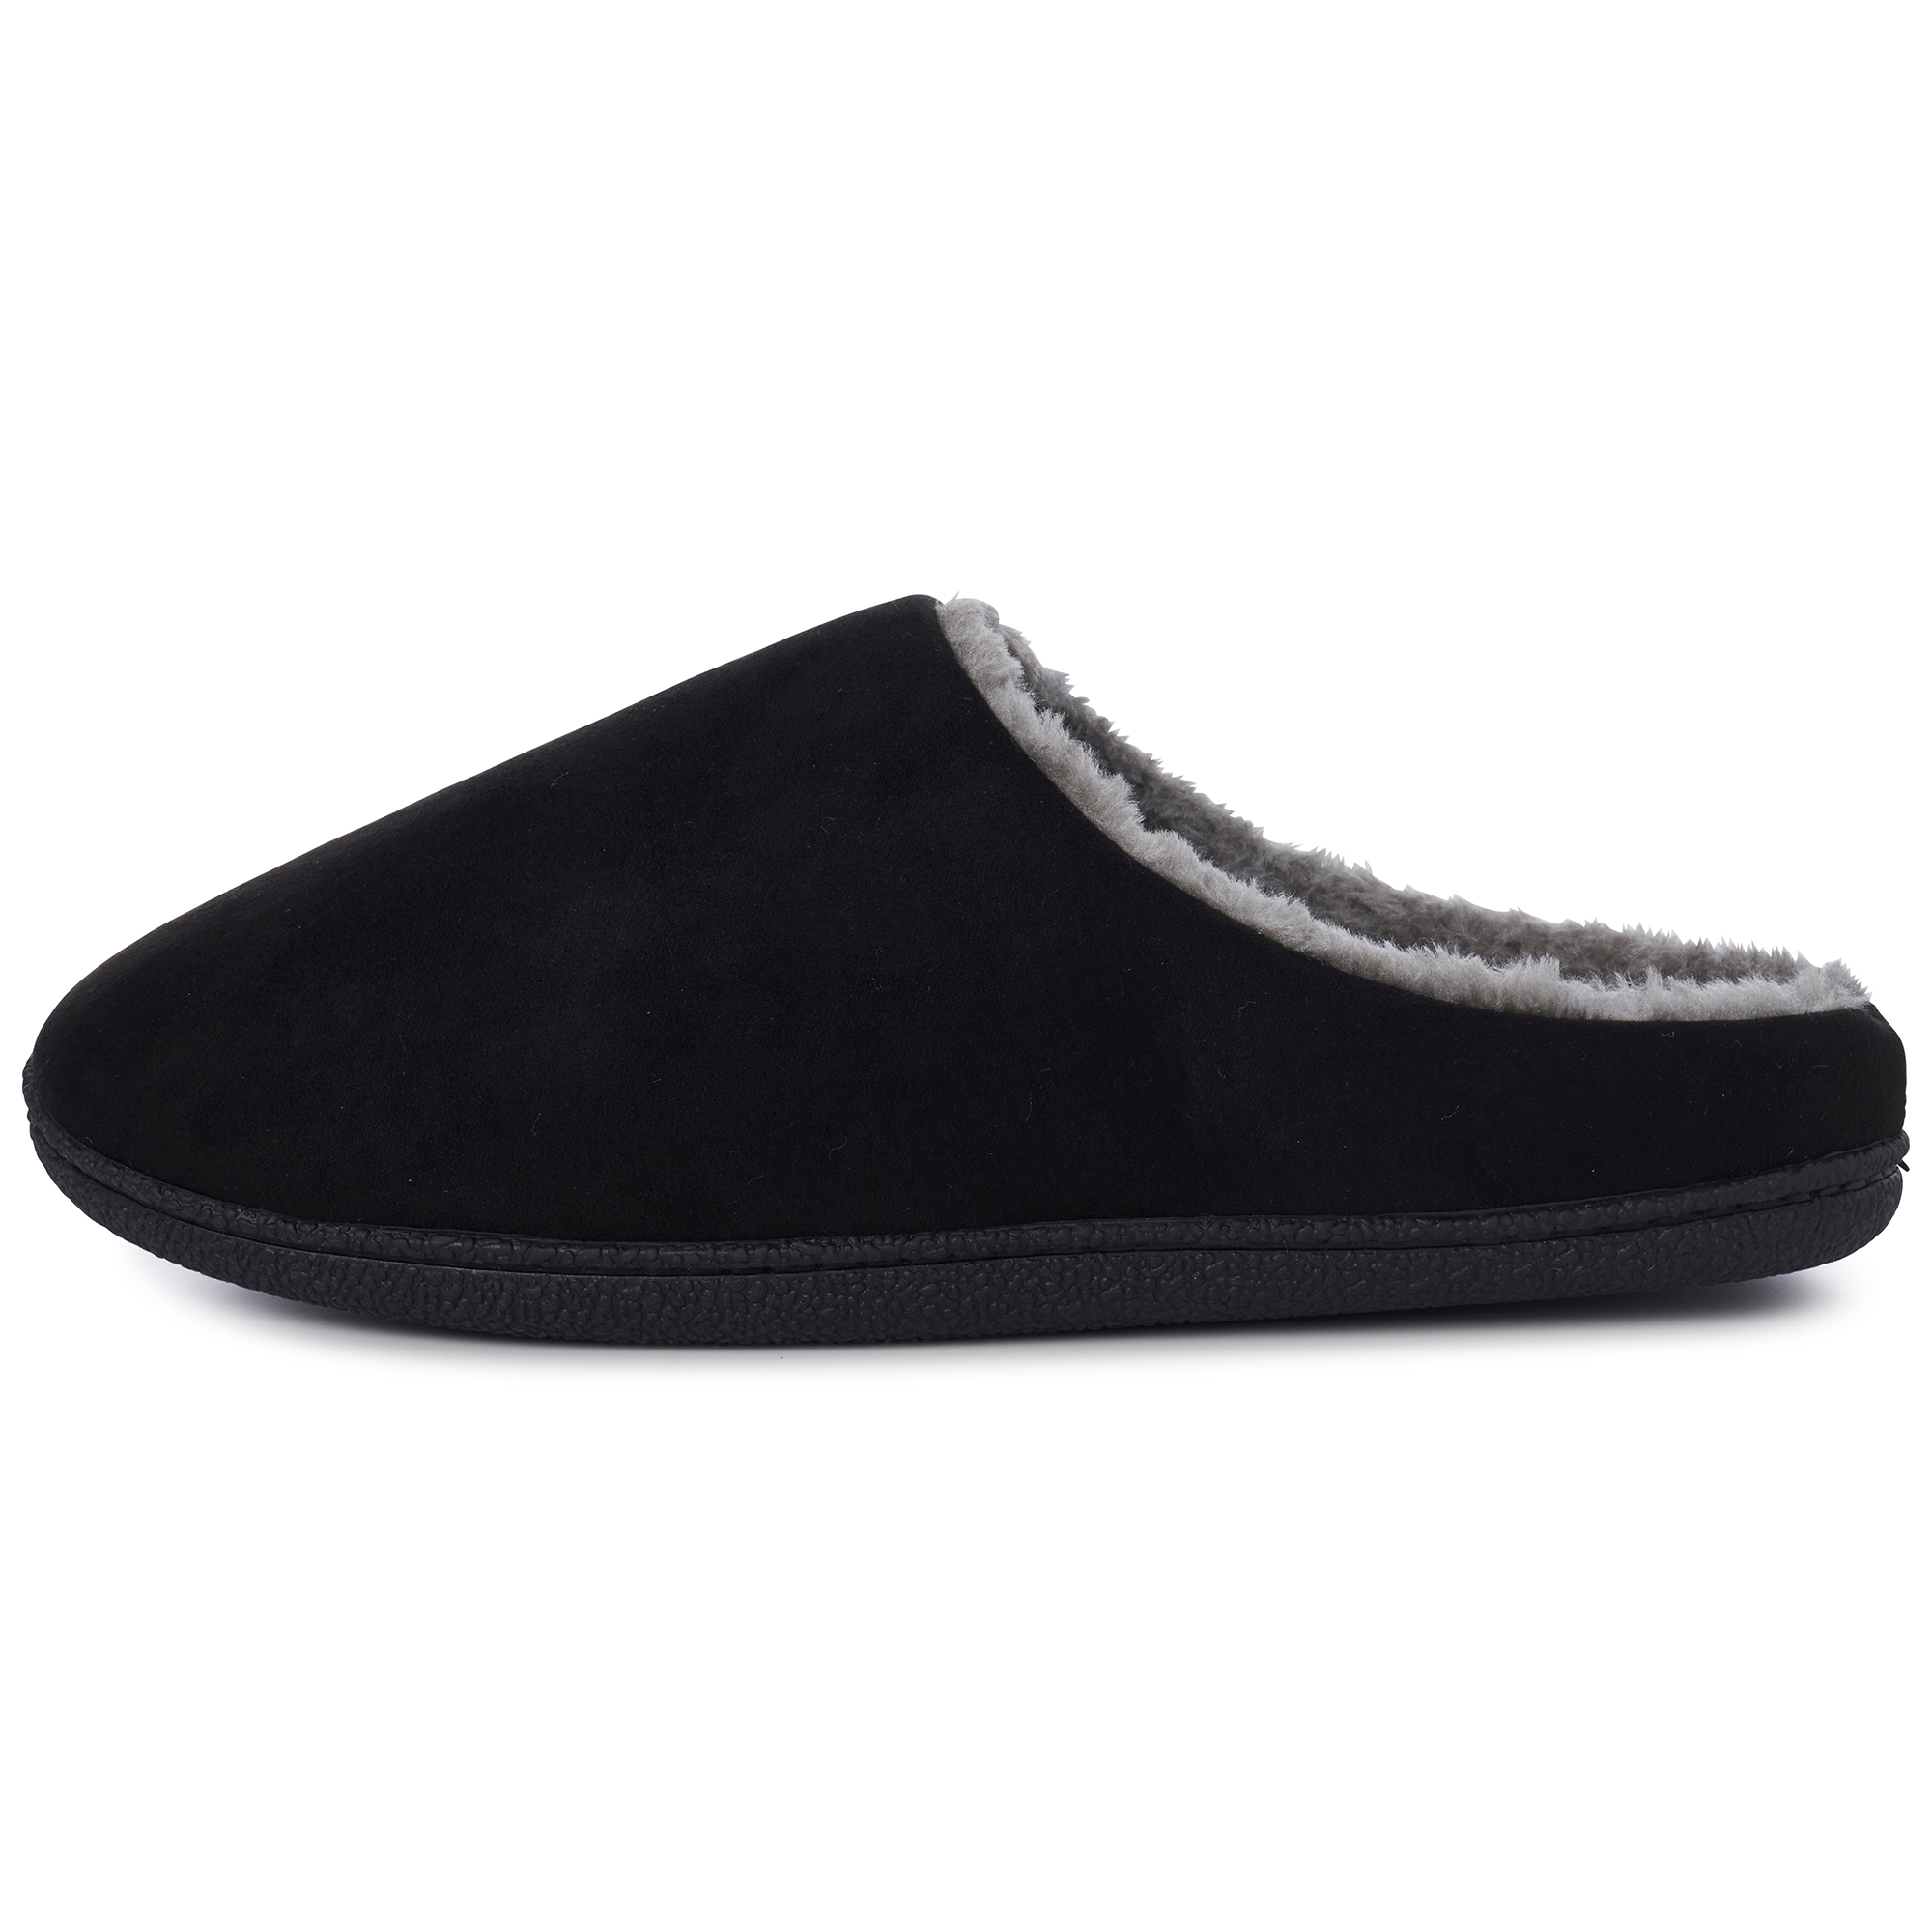 Alpine-Swiss-Mens-Memory-Foam-Clog-Slippers-Indoor-Comfort-Slip-On-House-Shoes thumbnail 13